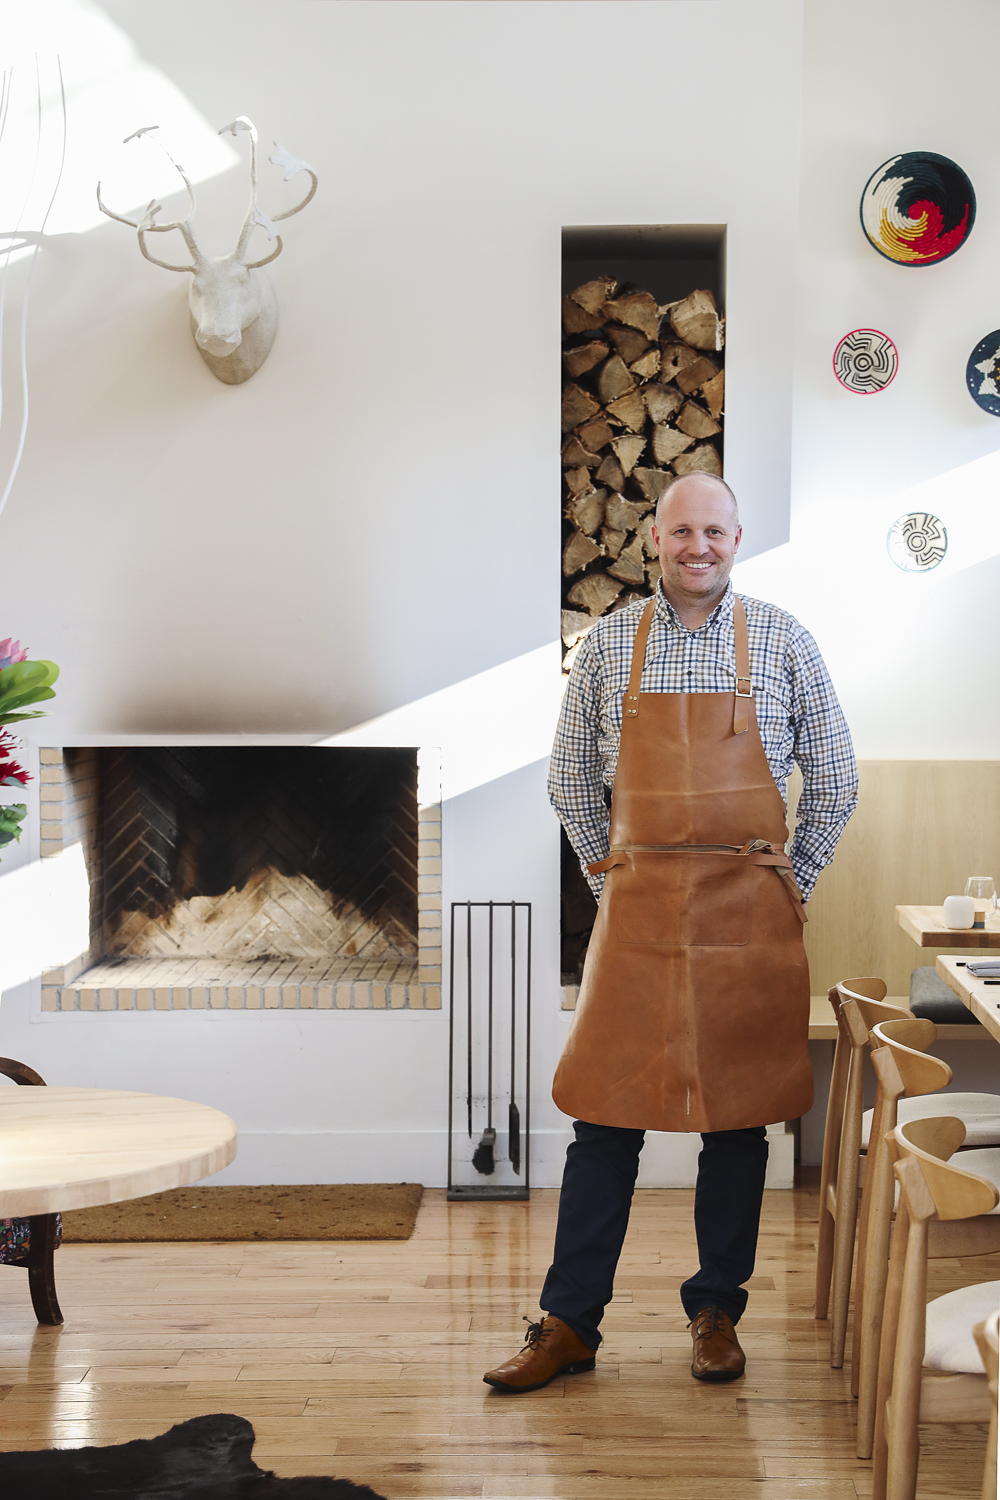 Chef Frederik de Pue designed not only the menu, but also the space at Flamant.